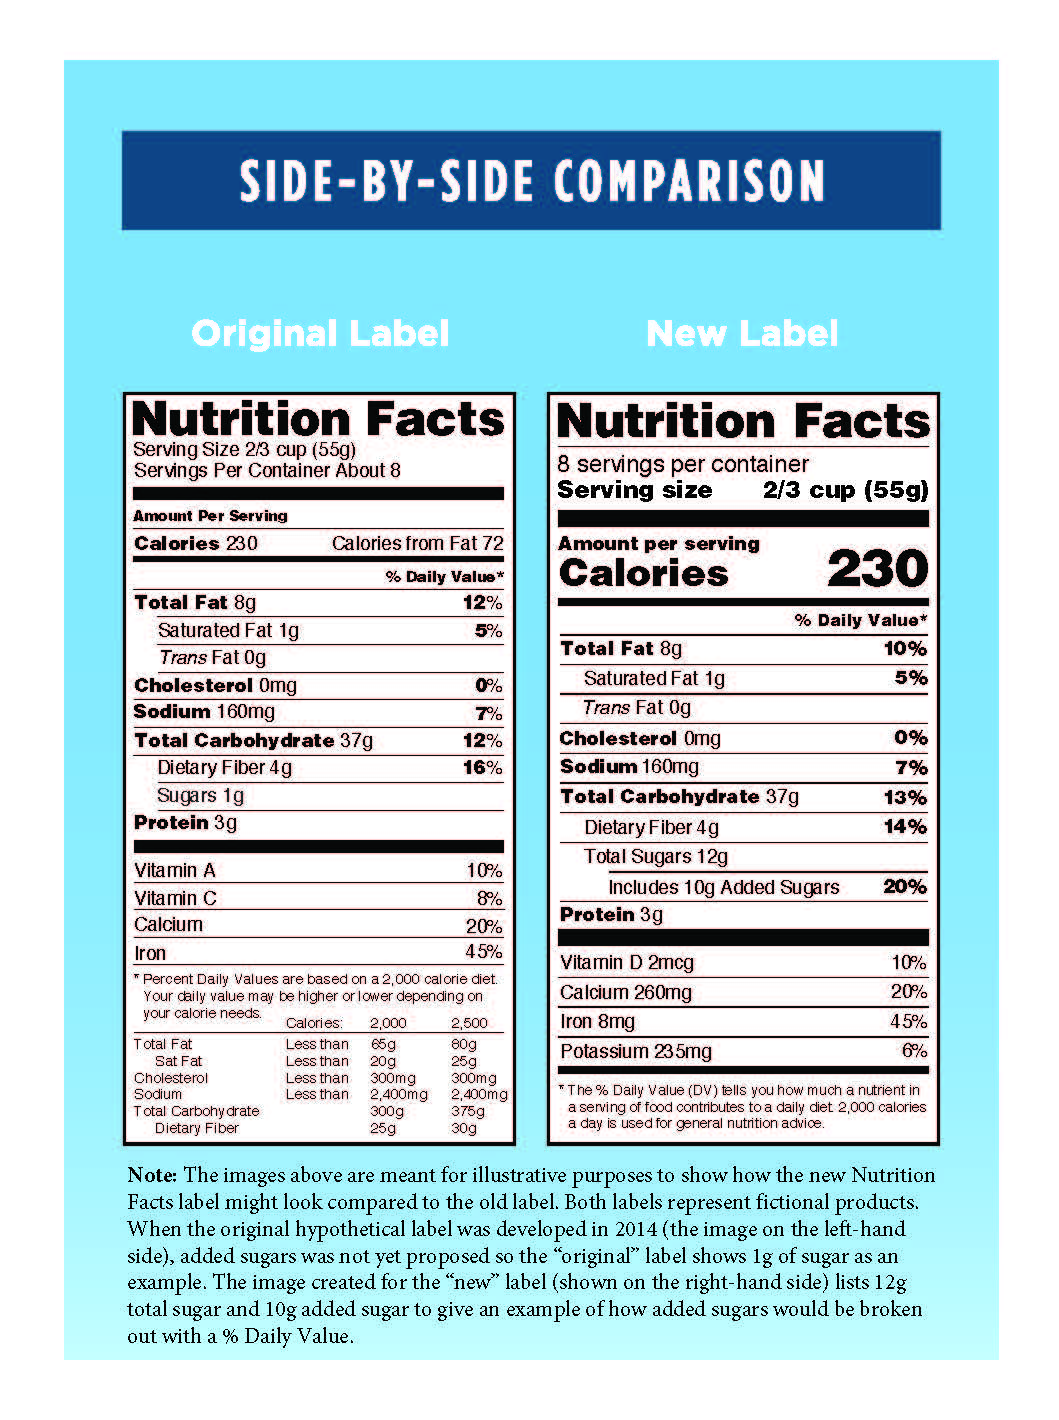 Fda Updates Nutrition Facts Label